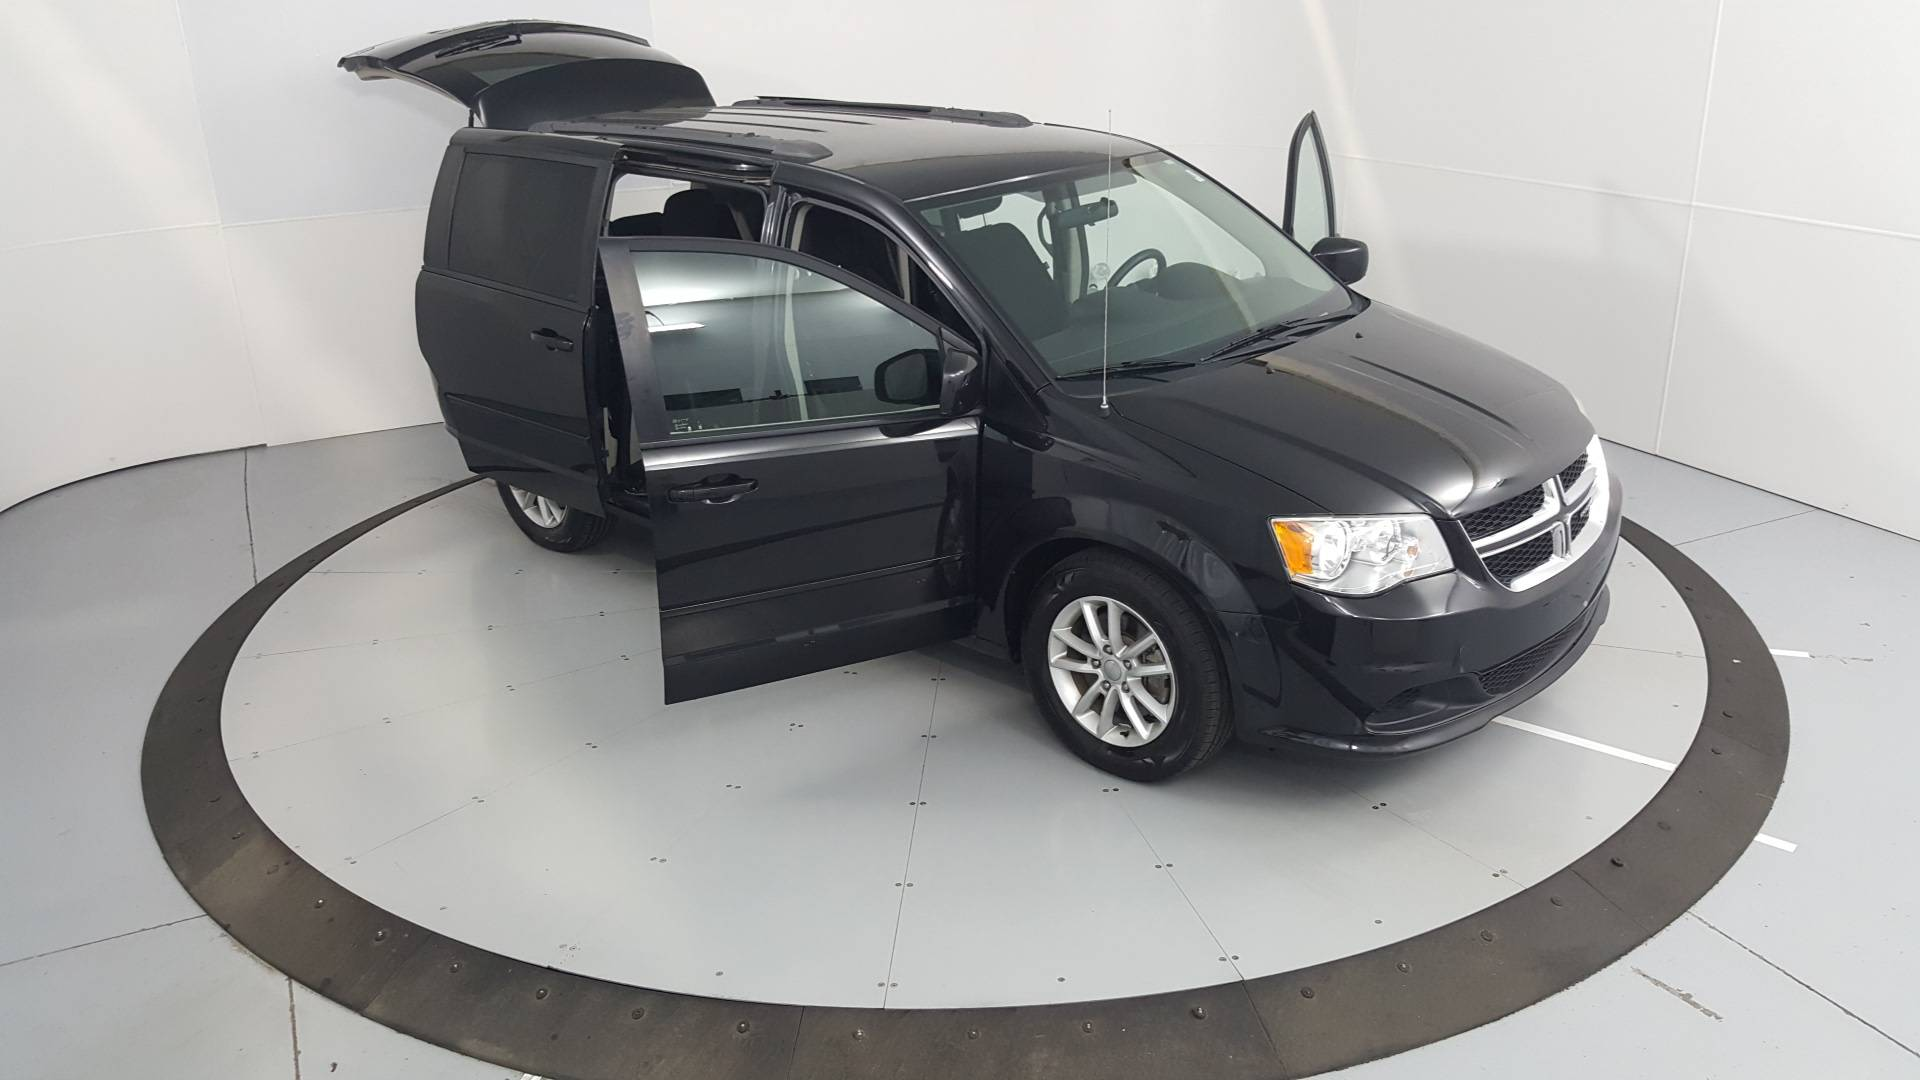 2014 Dodge Grand Caravan Mini-van, Passenger